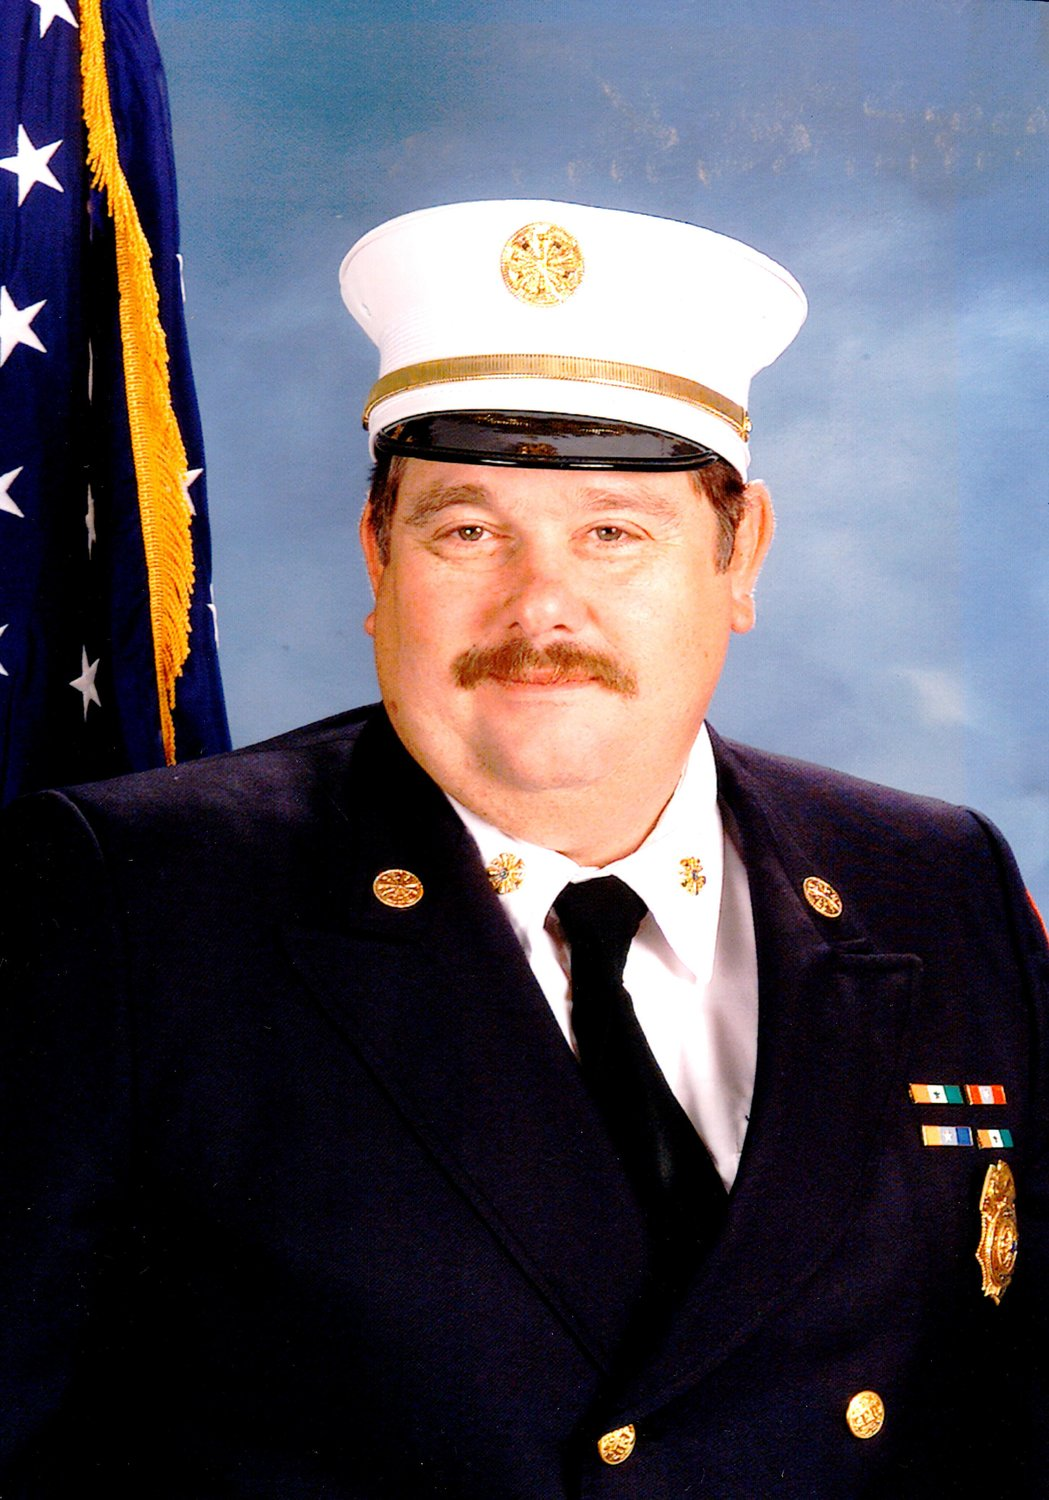 Former East Rockaway Fire Department Chief Gene Torborg died on Dec. 6 at age 63 after 45 years of serving the community.